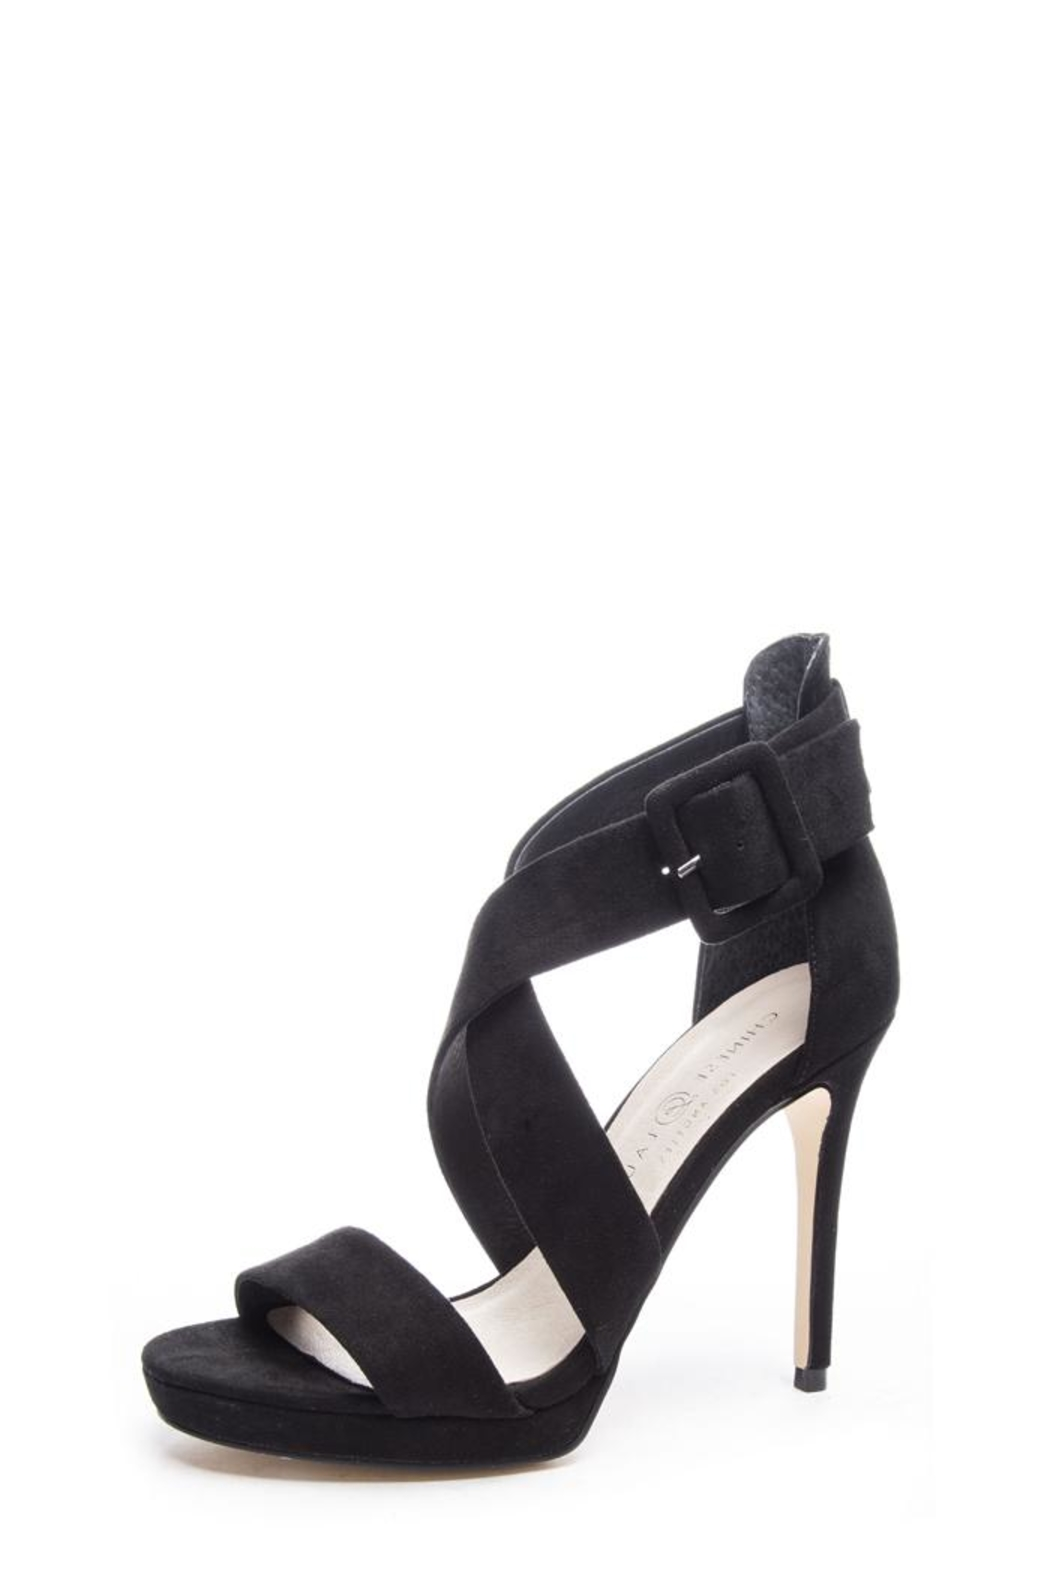 Chinese Laundry Foxie Black Heel - Side Cropped Image